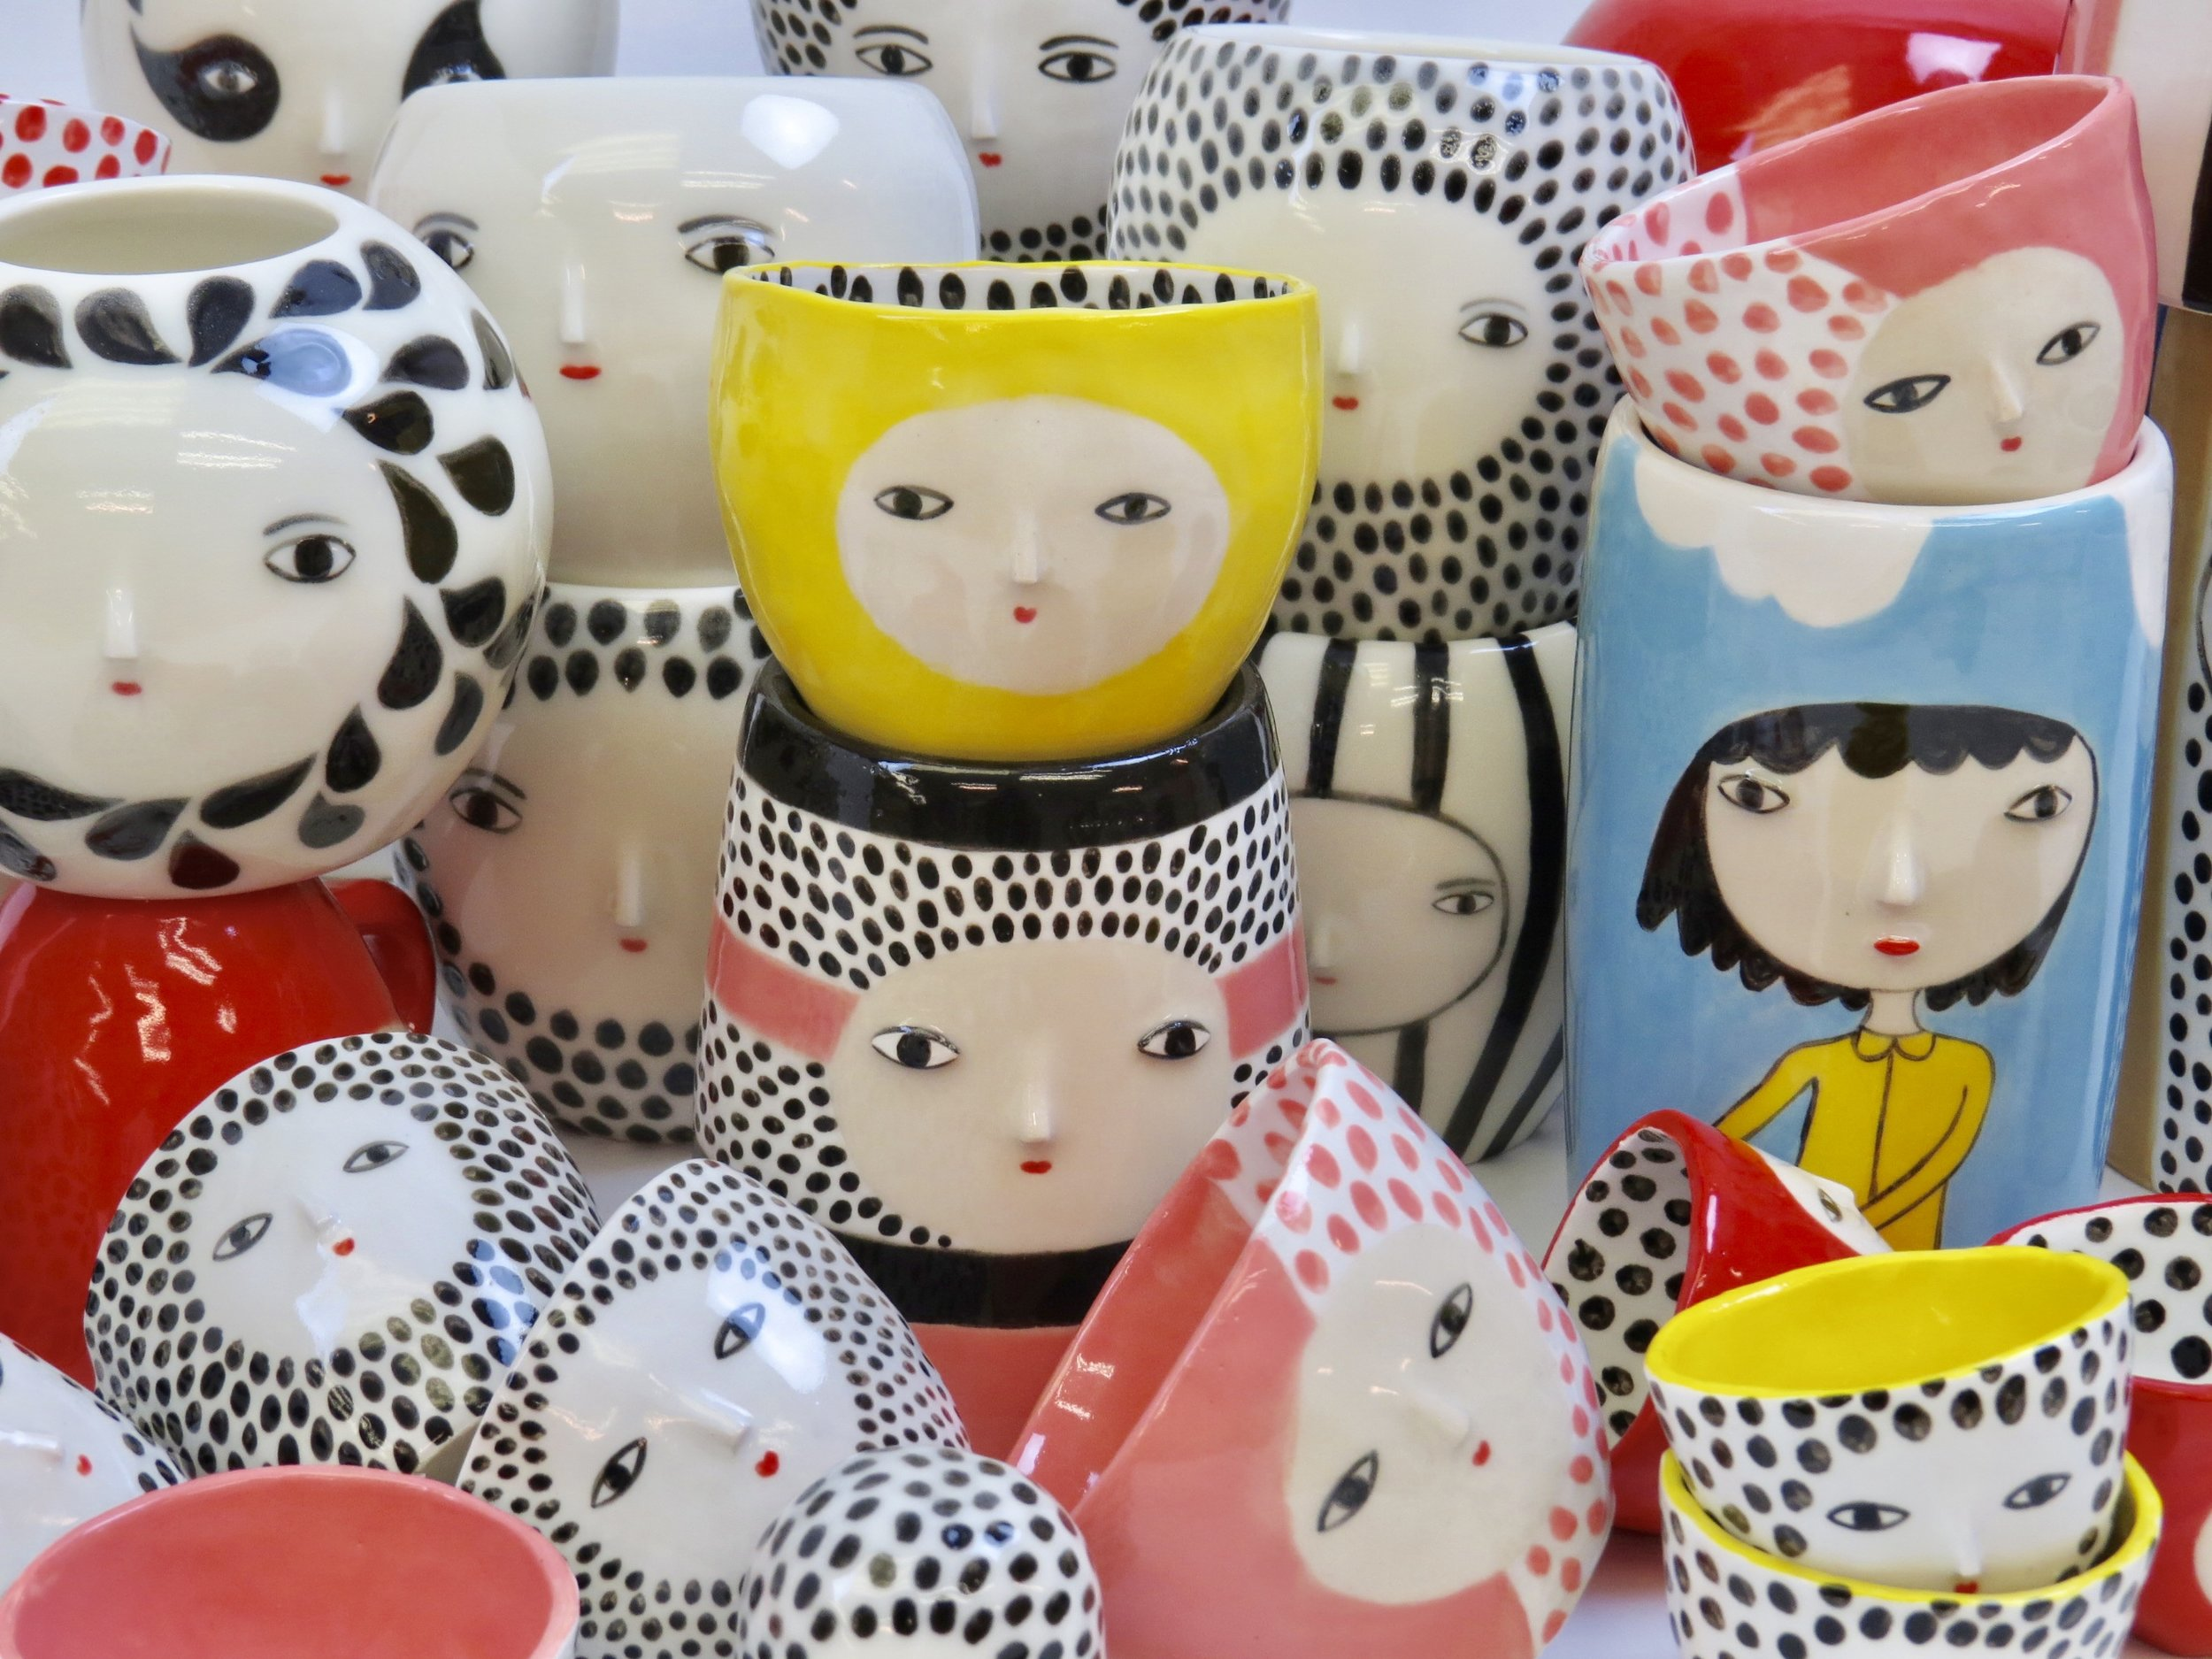 Ceramics and curiosities - One of a kind hand-crafted ceramics.